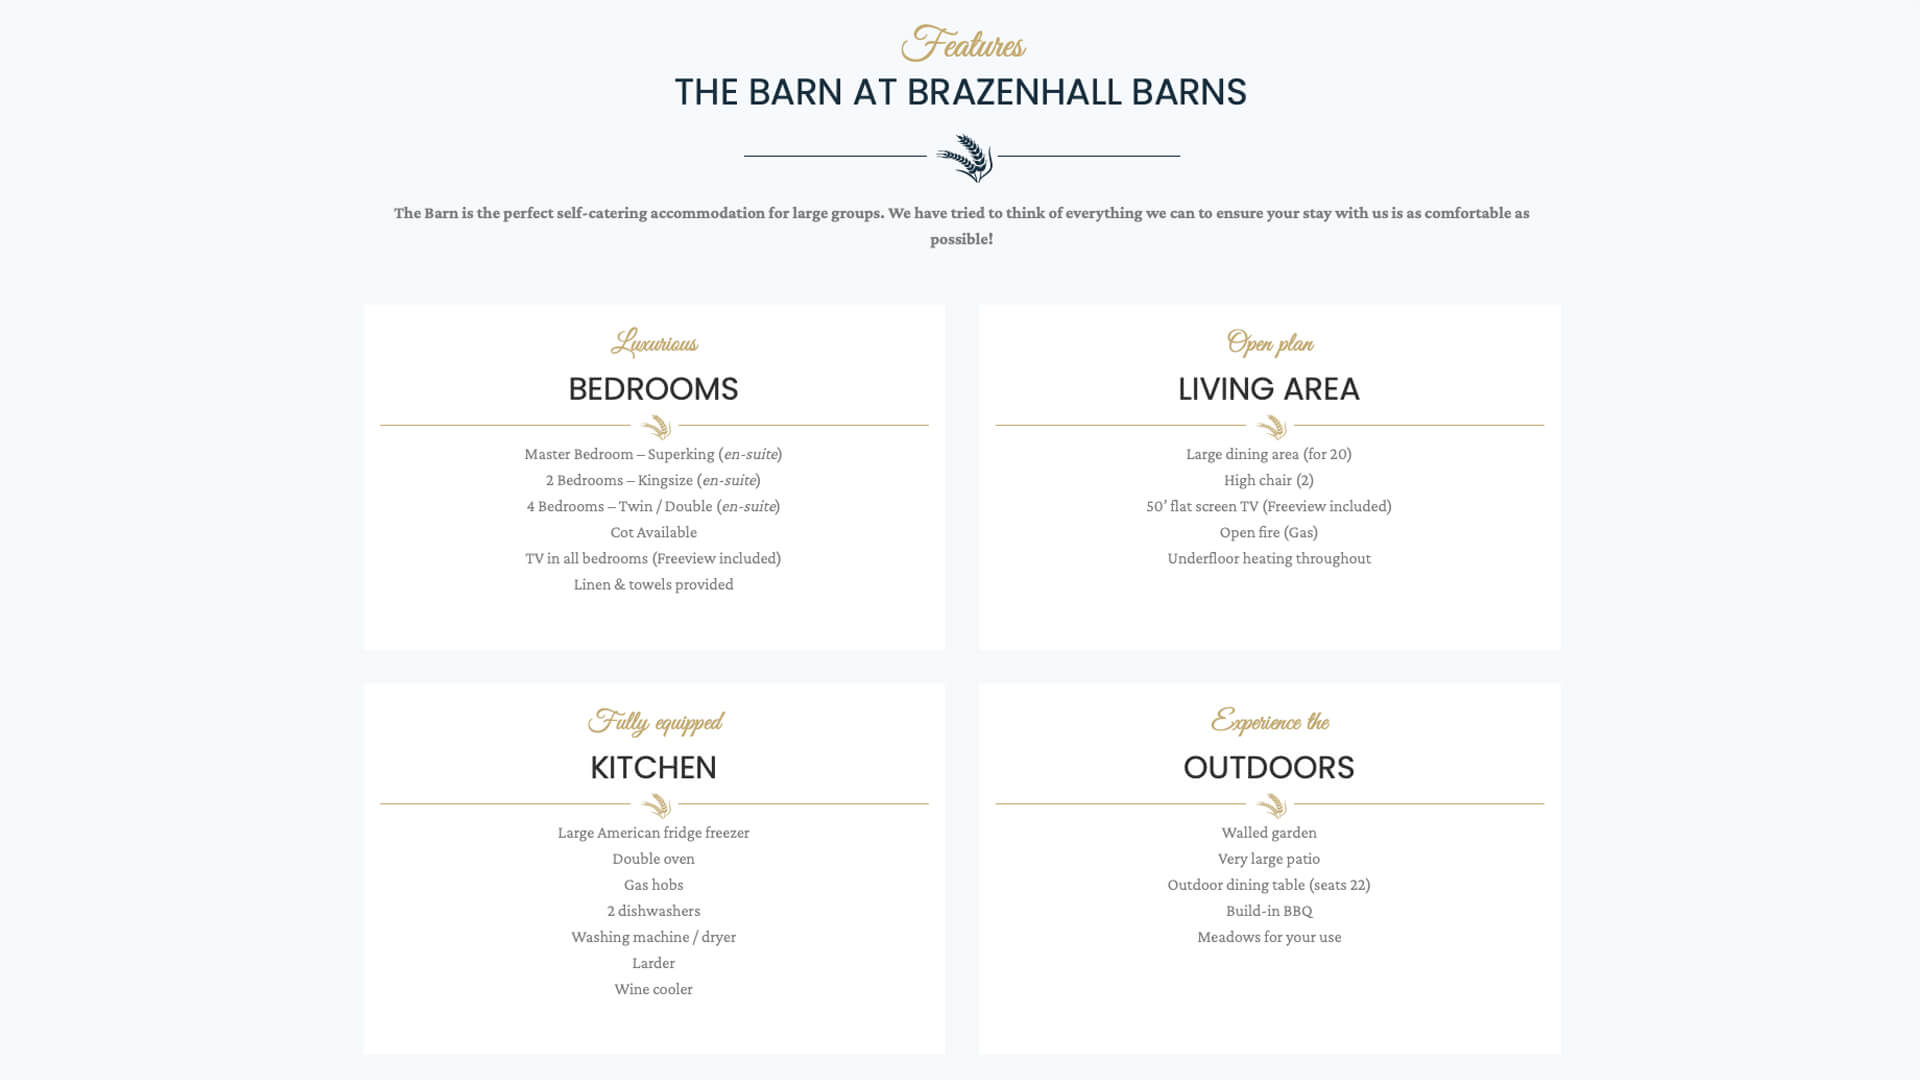 Brazenhall Barns Property Features